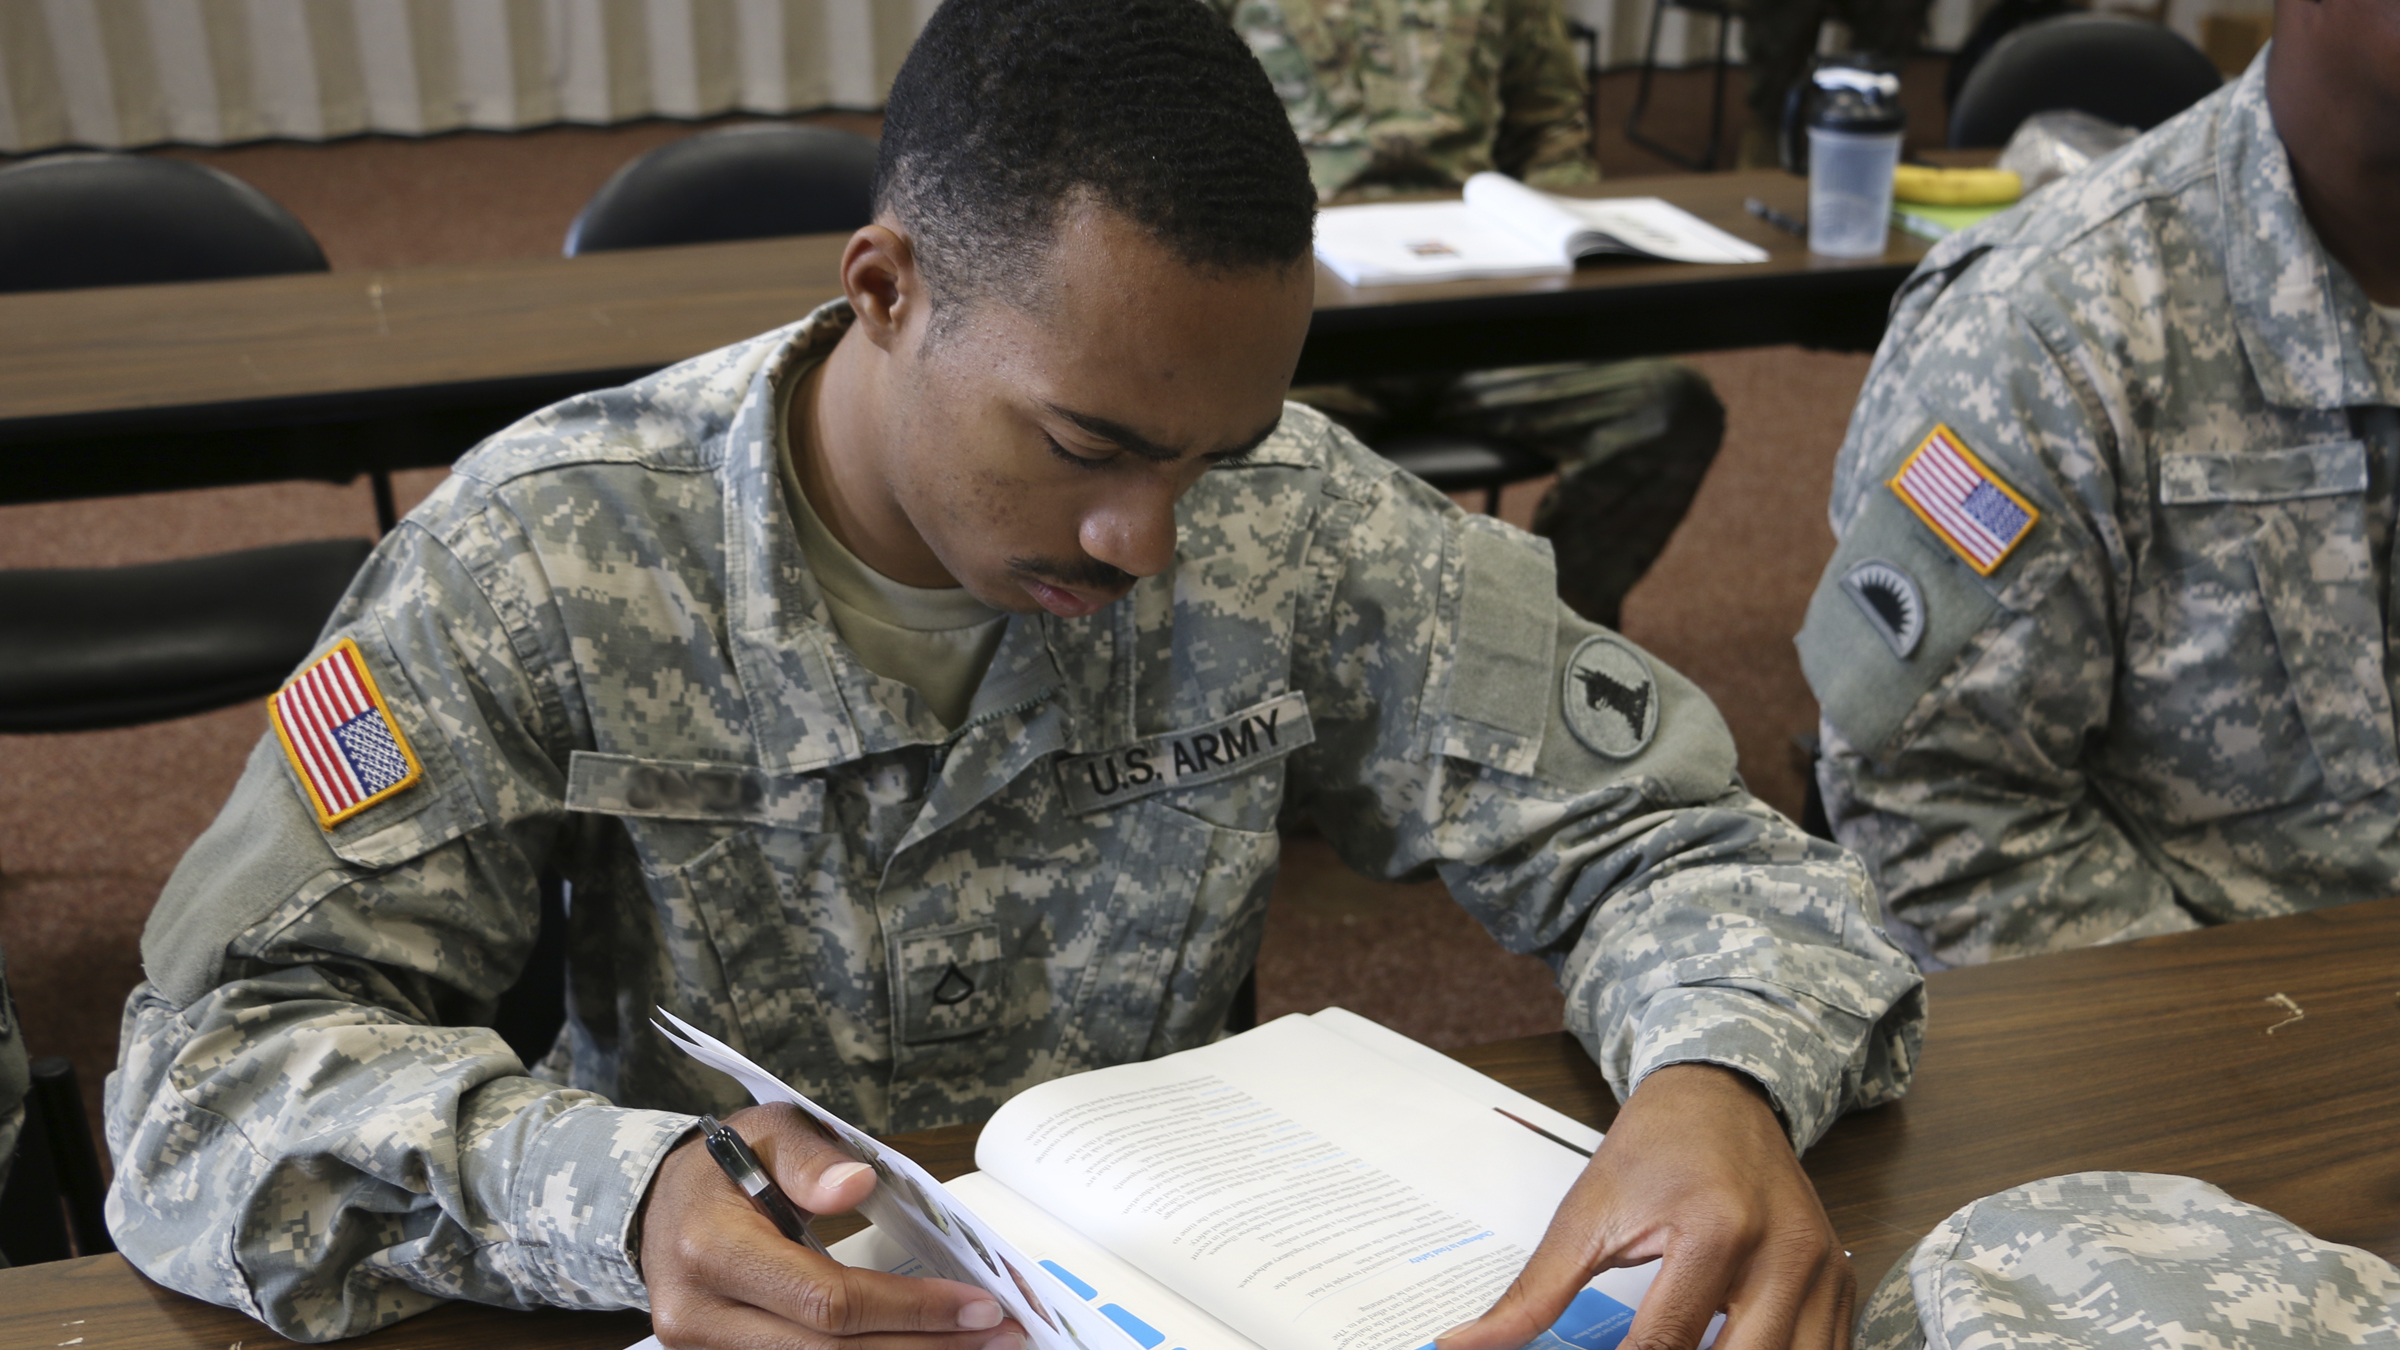 Soldier studying from a textbook